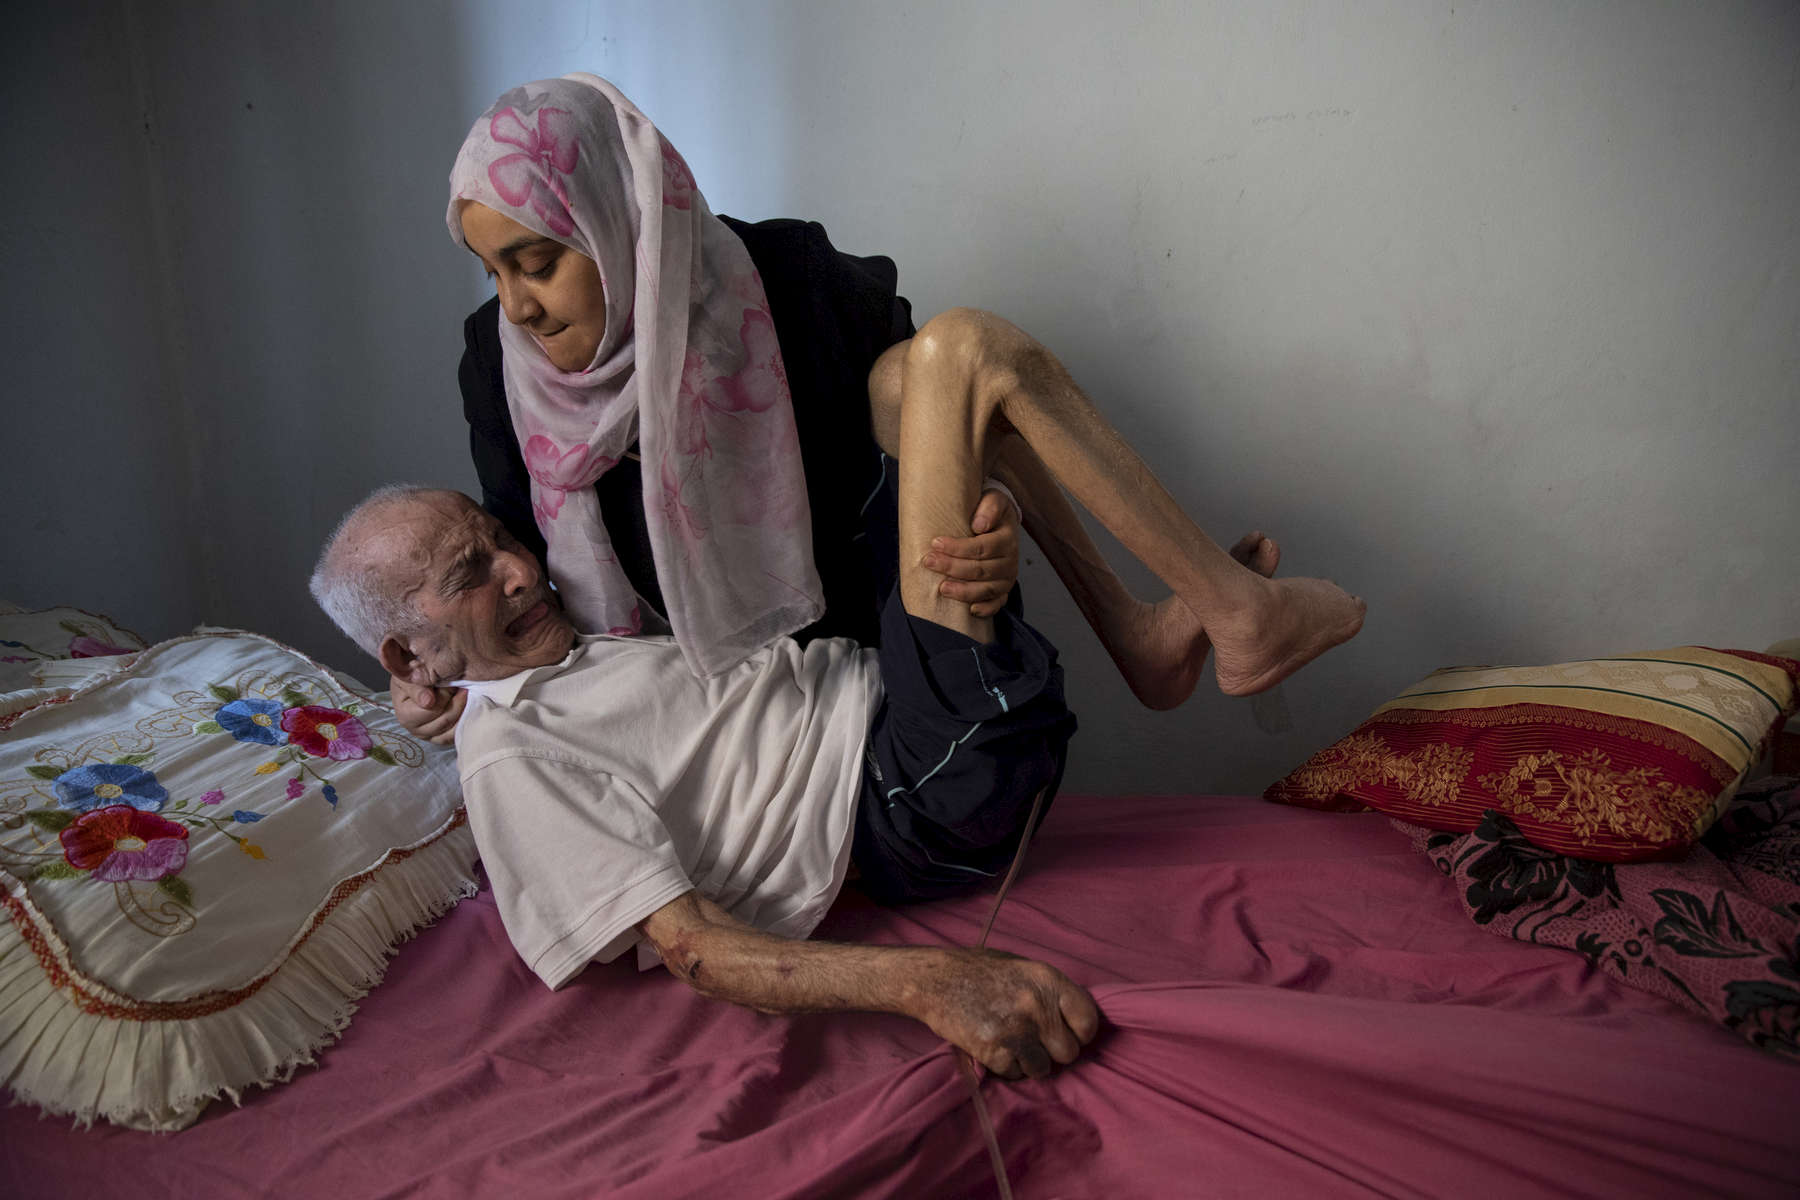 BEIT LAHIA, GAZA STRIP- MAY 28,2018Fadel Al-Zain, 70, is taken care of by his daughter Hana' Al-Zain on May 28,2018 in Beit Lahia, Gaza strip. He was injured in height of the 2014 offensive when bombing hit near his home. He is now paralyzed, quadriplegic, and can't function on his own after he suffered internal bleeding in his brain.The world's largest open air prison along the Israel-Gaza border. Everyone is well aware that Gaza's two million inhabitants are trapped in a cycle of violence and poverty, created by policies and political decisions on both sides. The problems and complications affecting Gaza today are overwhelming. The world, seemingly accustomed to the suffering of the Gazan people turns a blind eye. (Photo by Paula Bronstein )